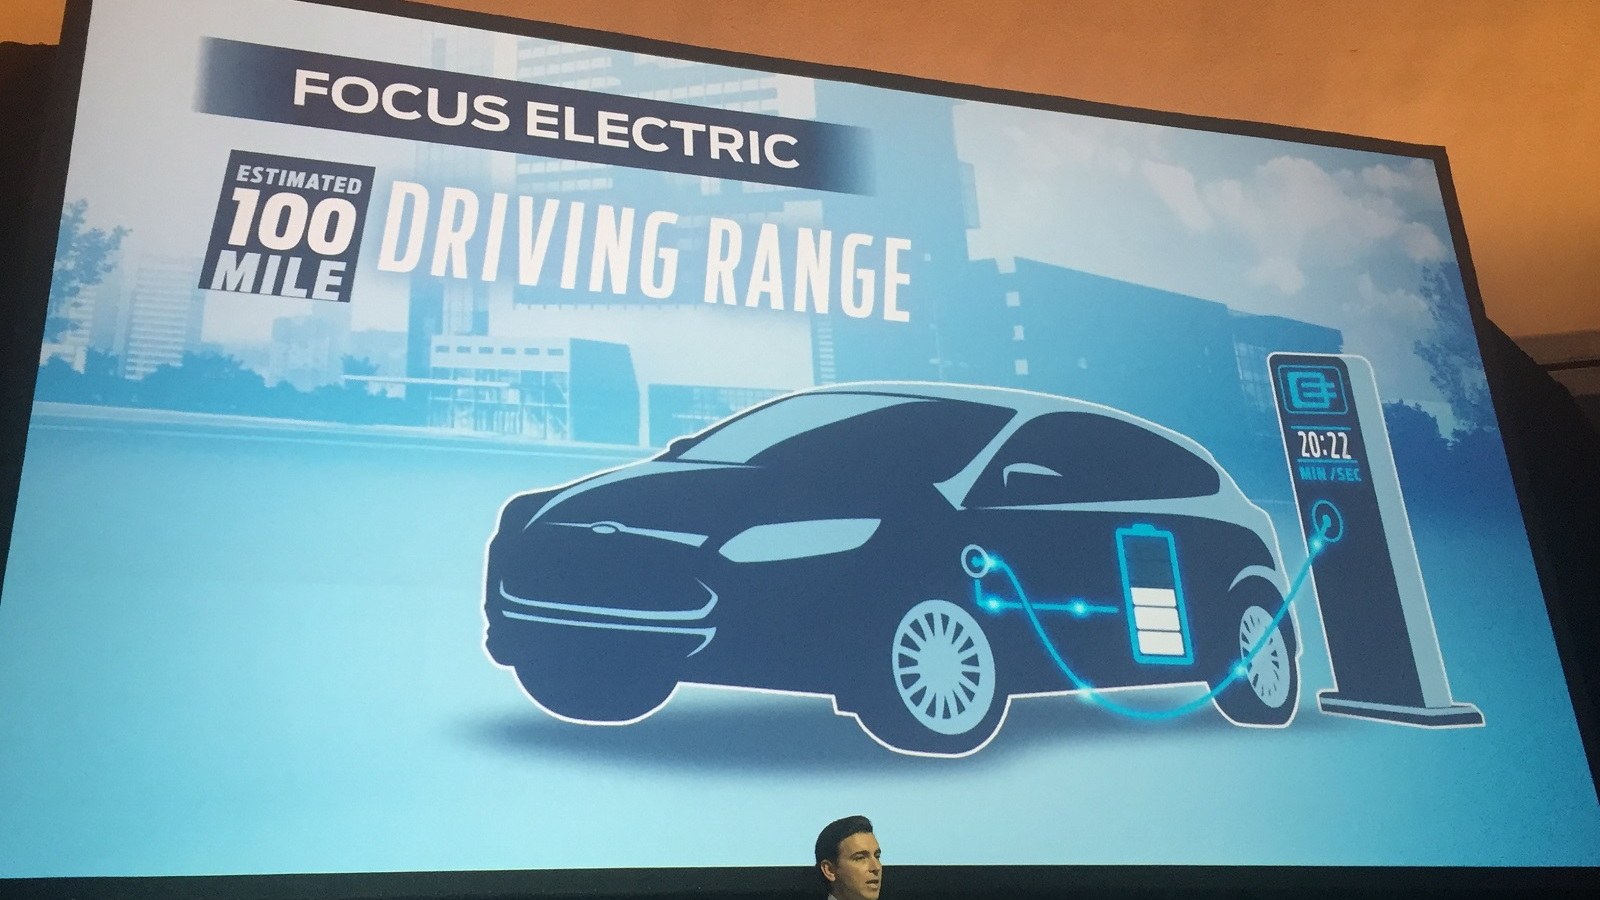 Ford Focus Electric News - Green Car Photos, News, Reviews, and